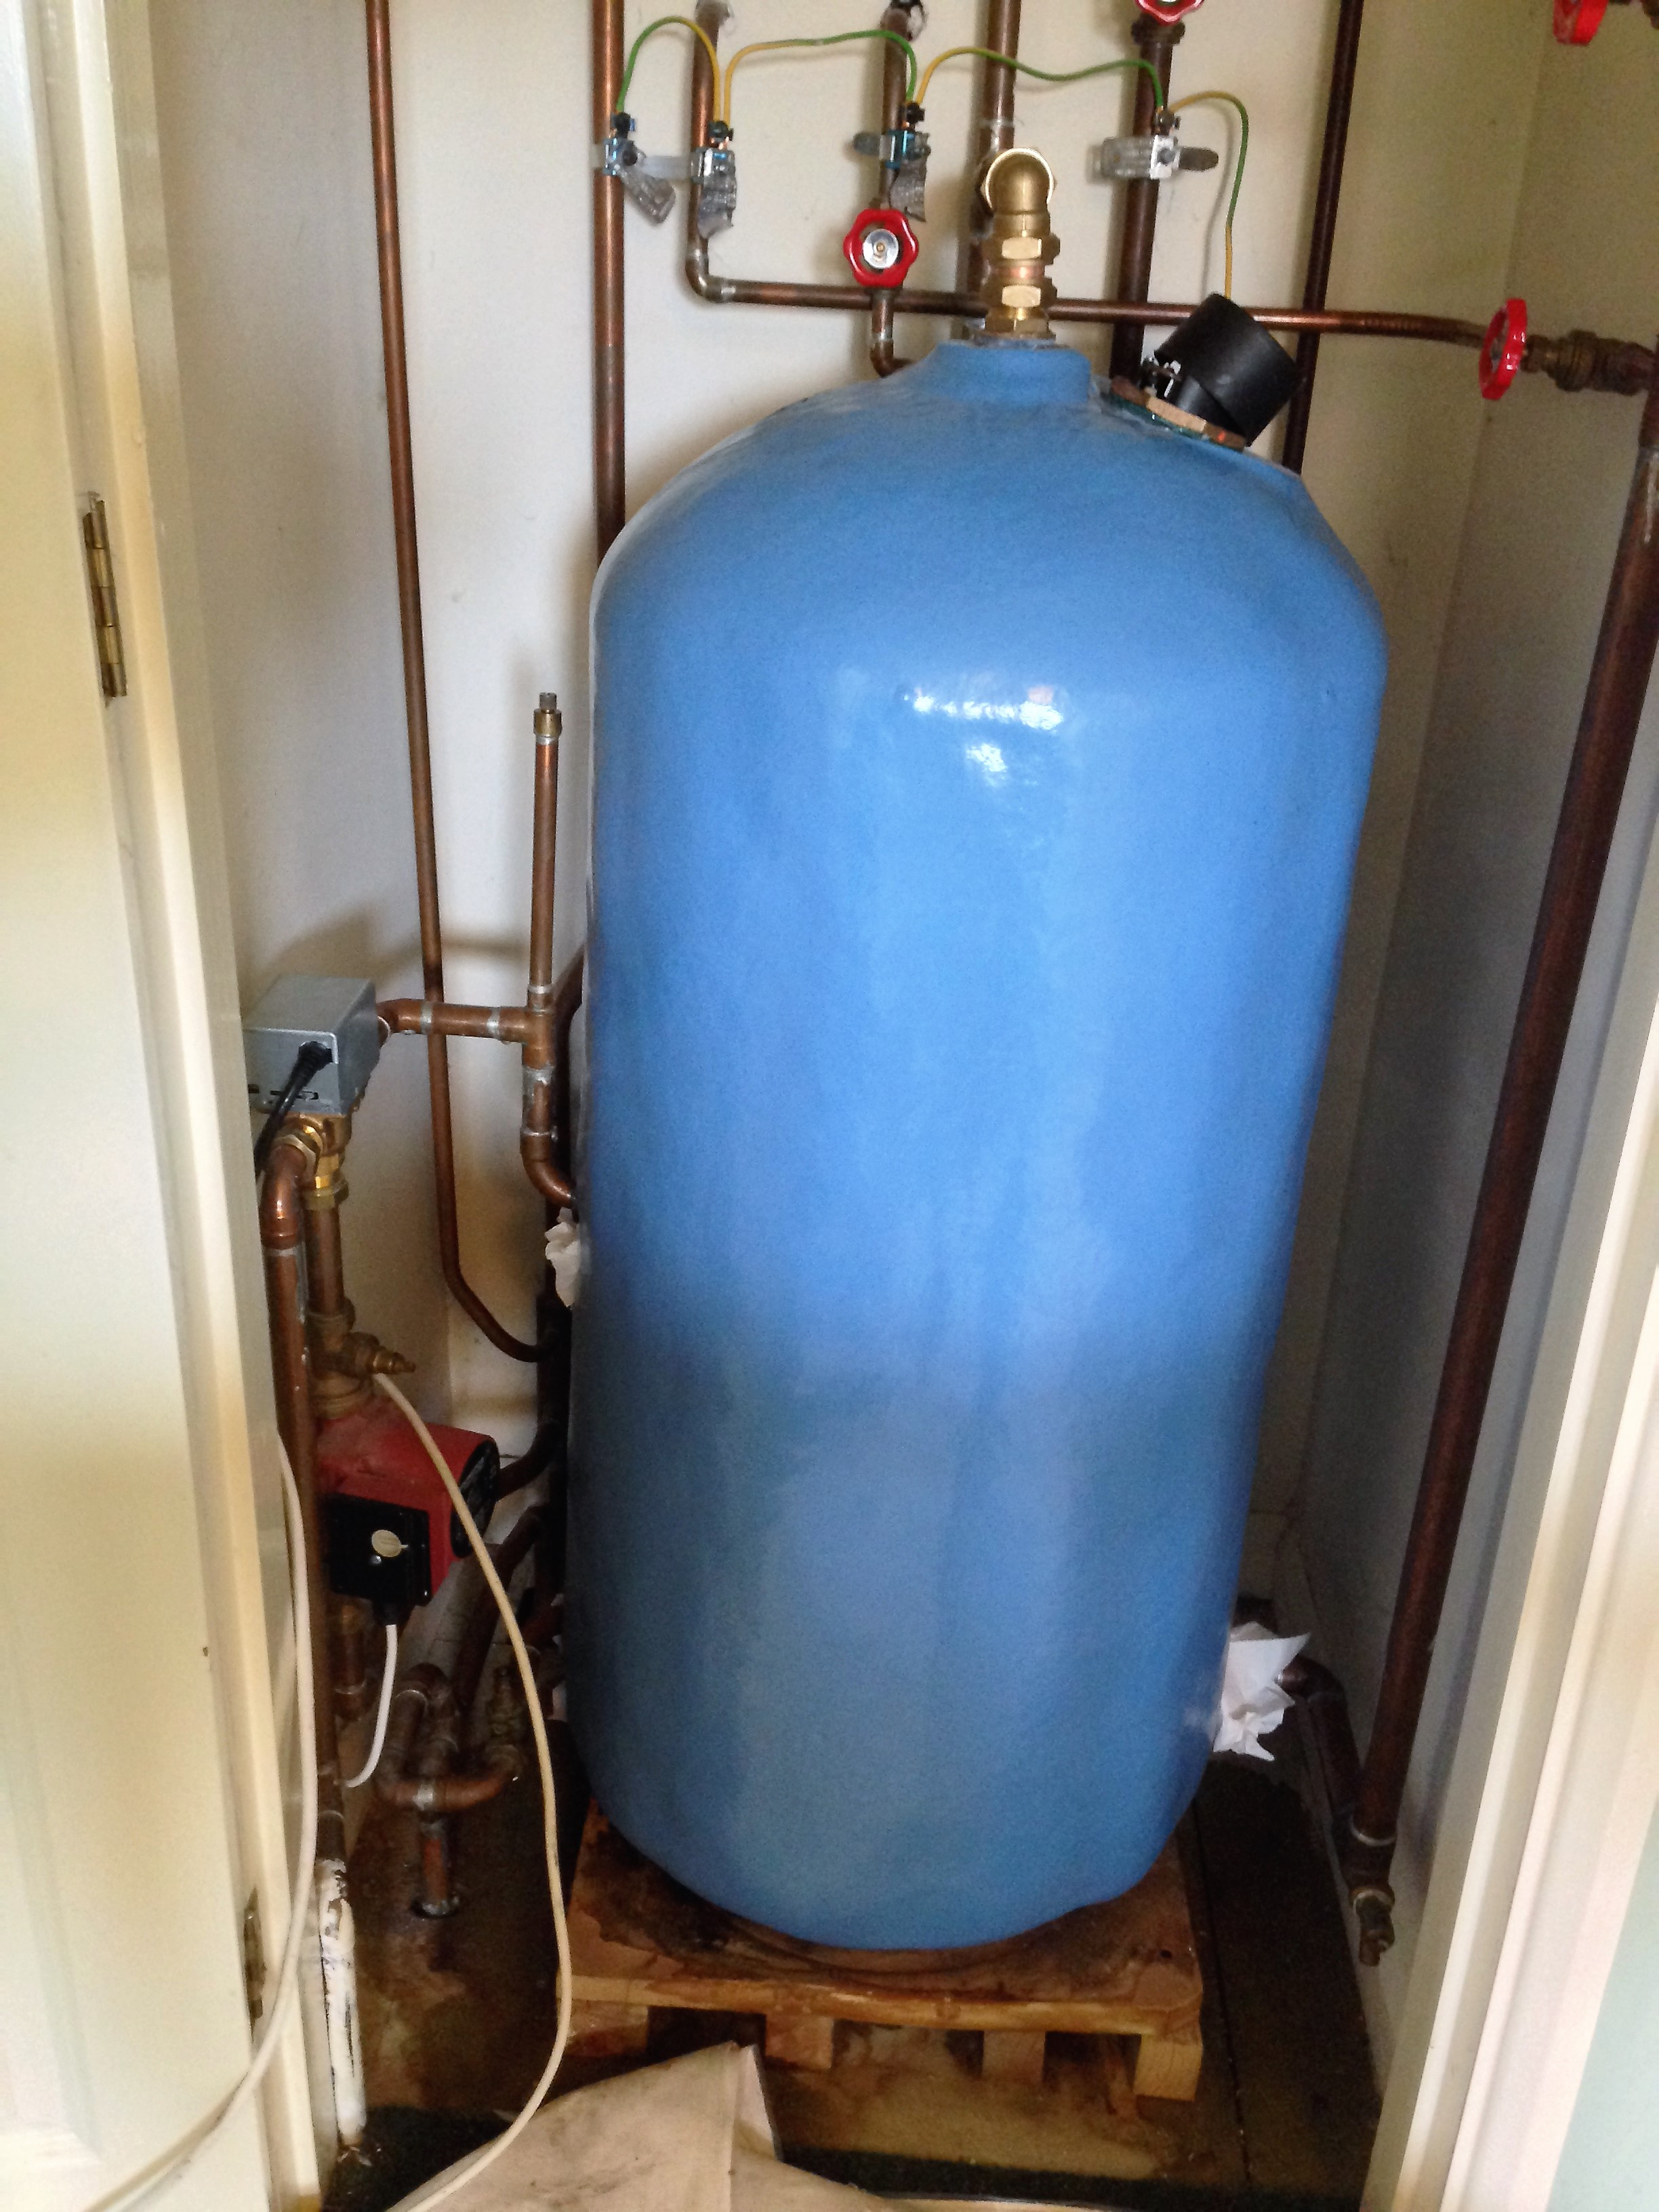 Old Stratford Plumbing Hot water Tank after